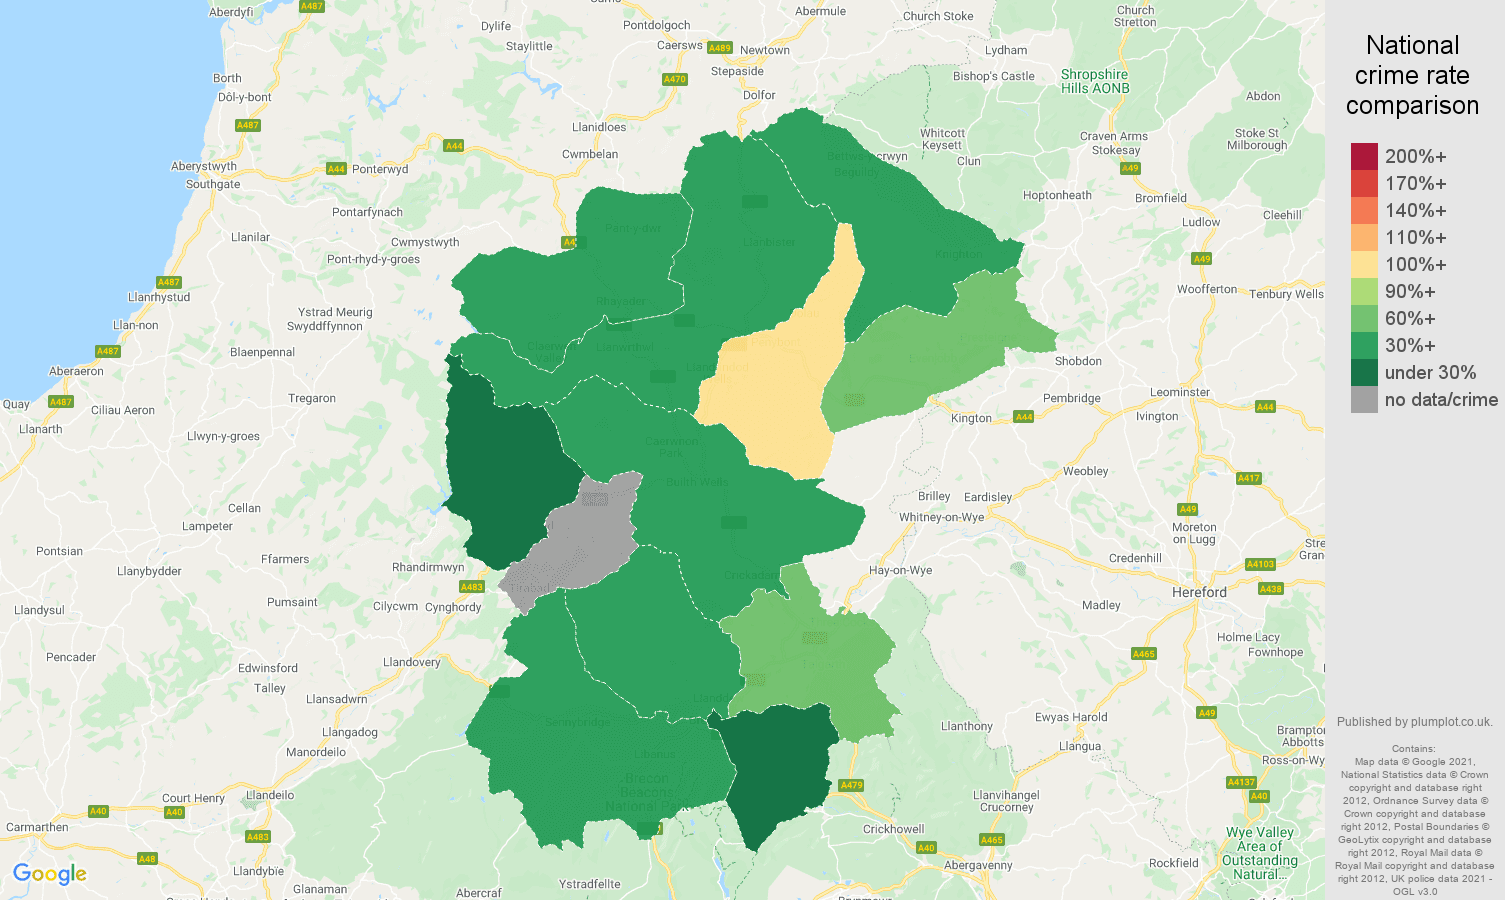 Llandrindod Wells burglary crime rate comparison map